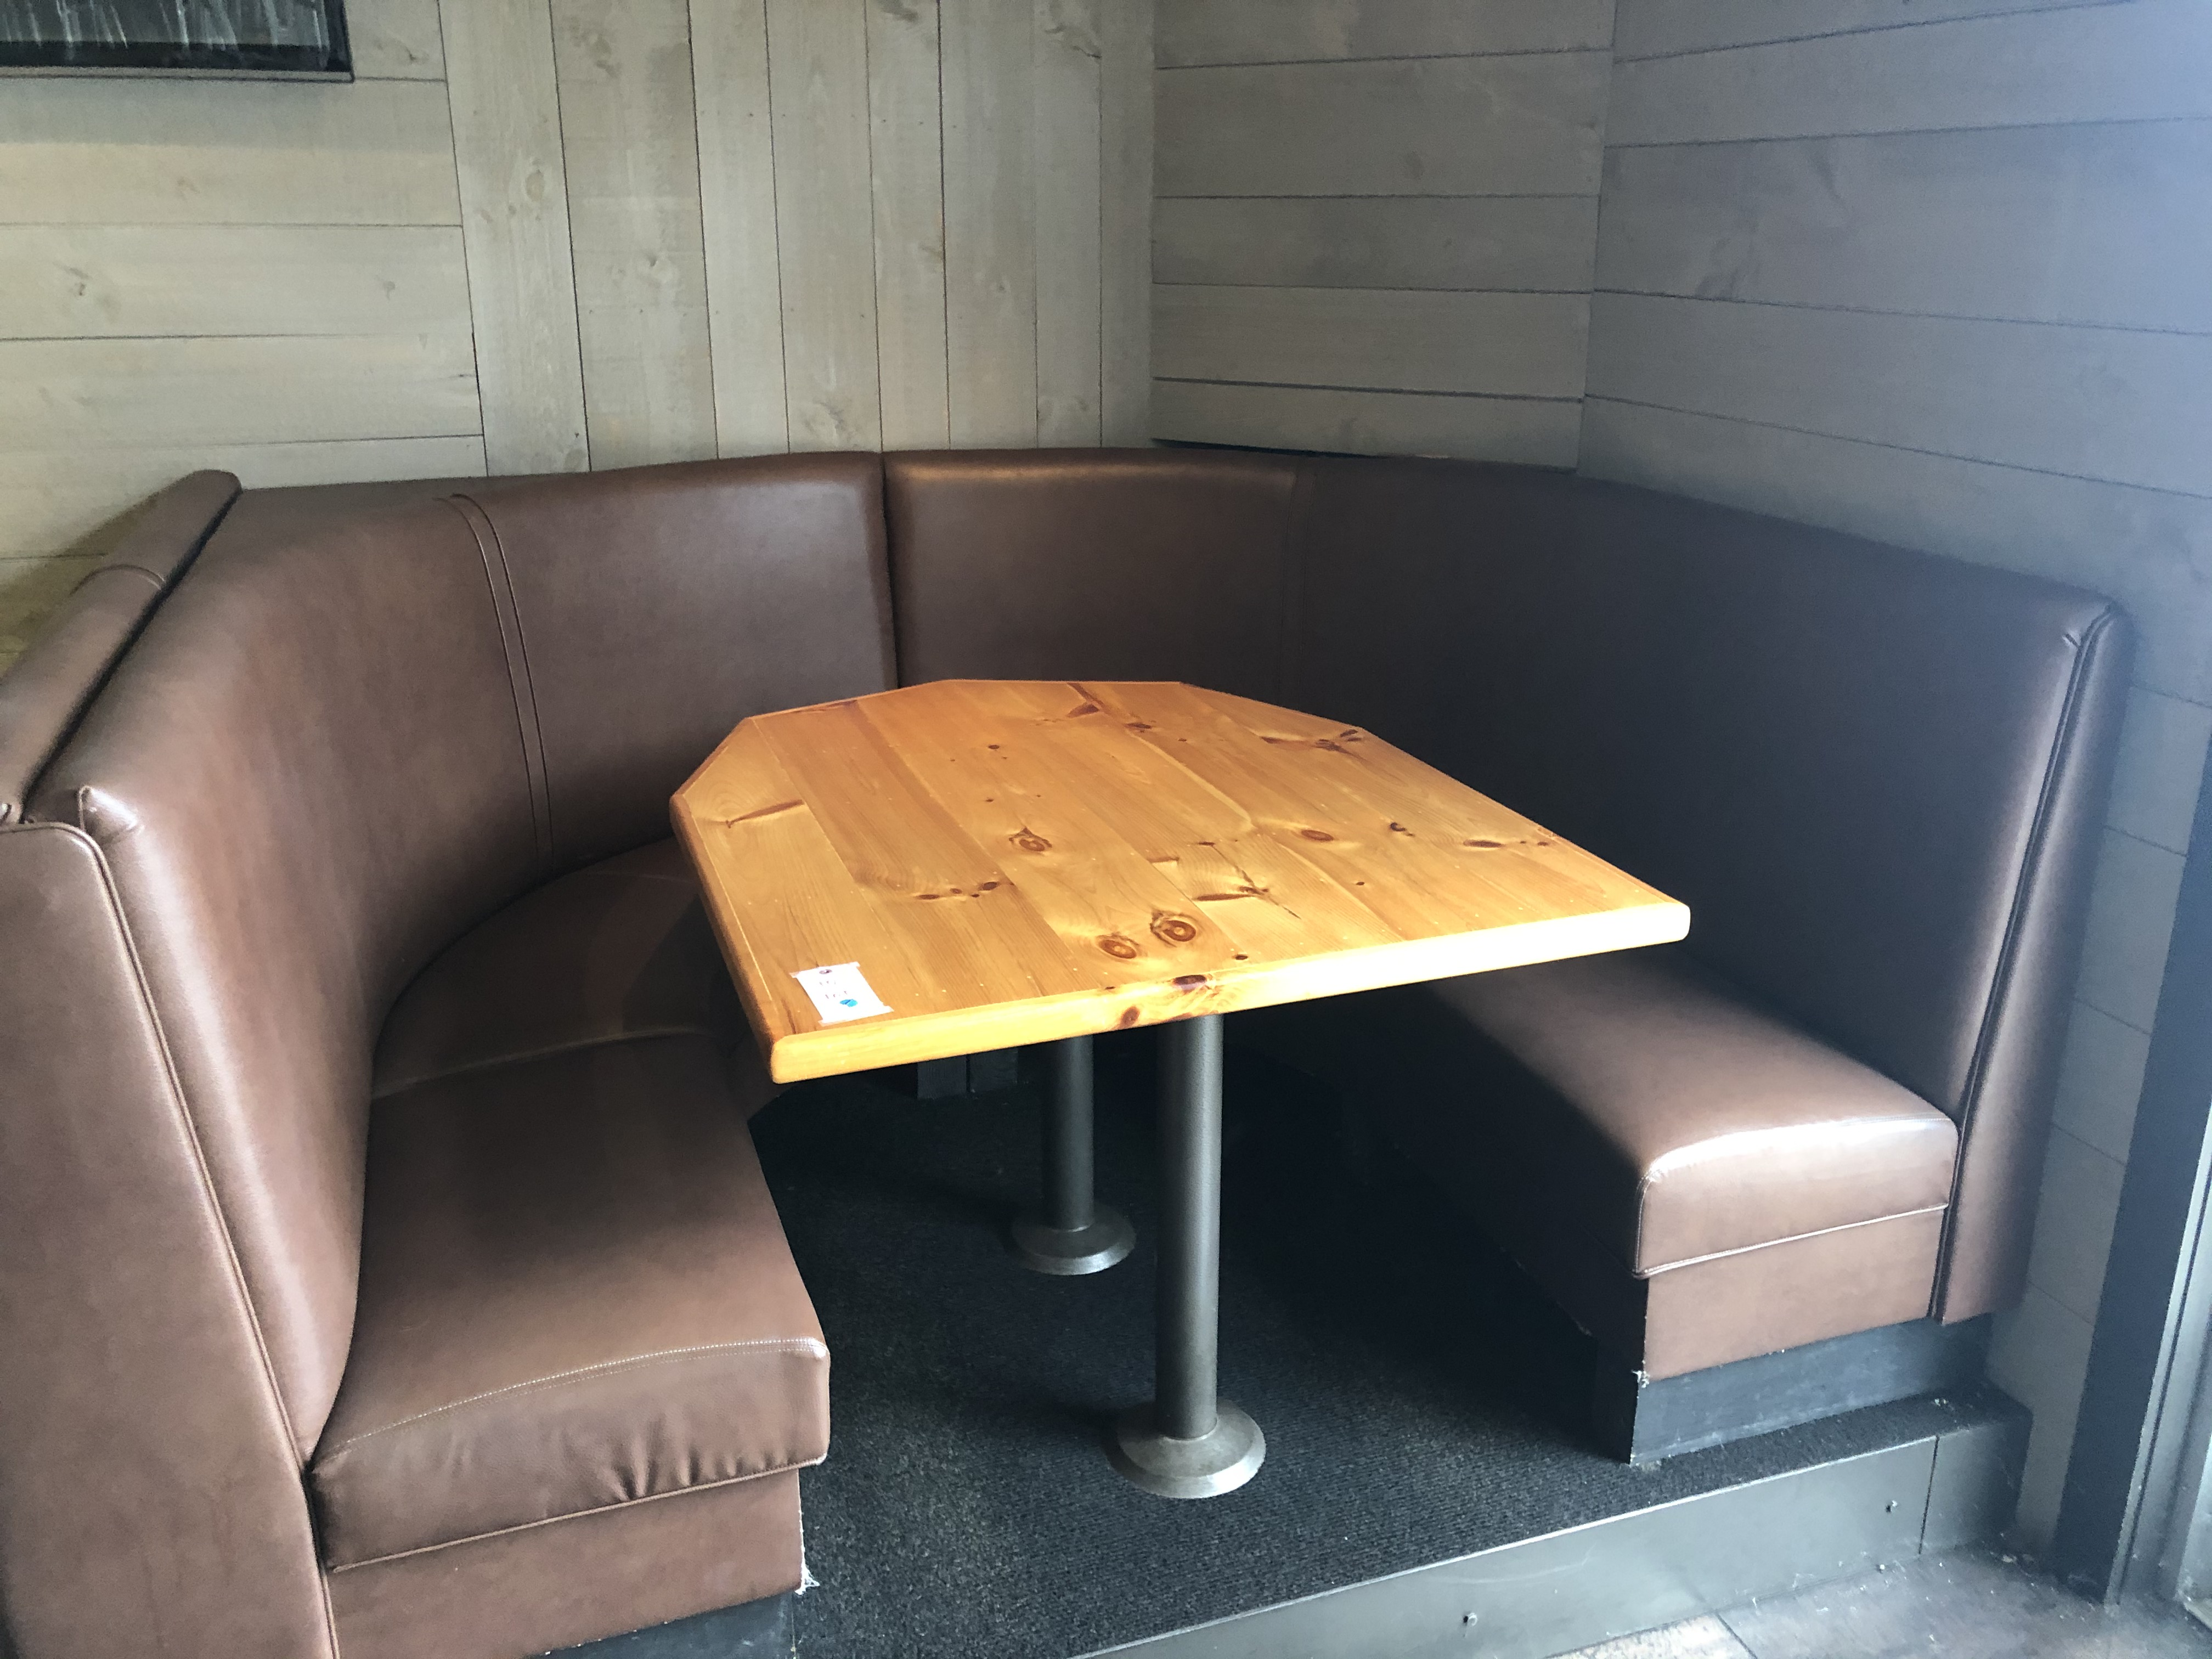 {LOT} (4) Complete Booth Setups c/o: (2) Fully Upholstered U-Shaped 7' x 6' Booths w/Double Pedestal